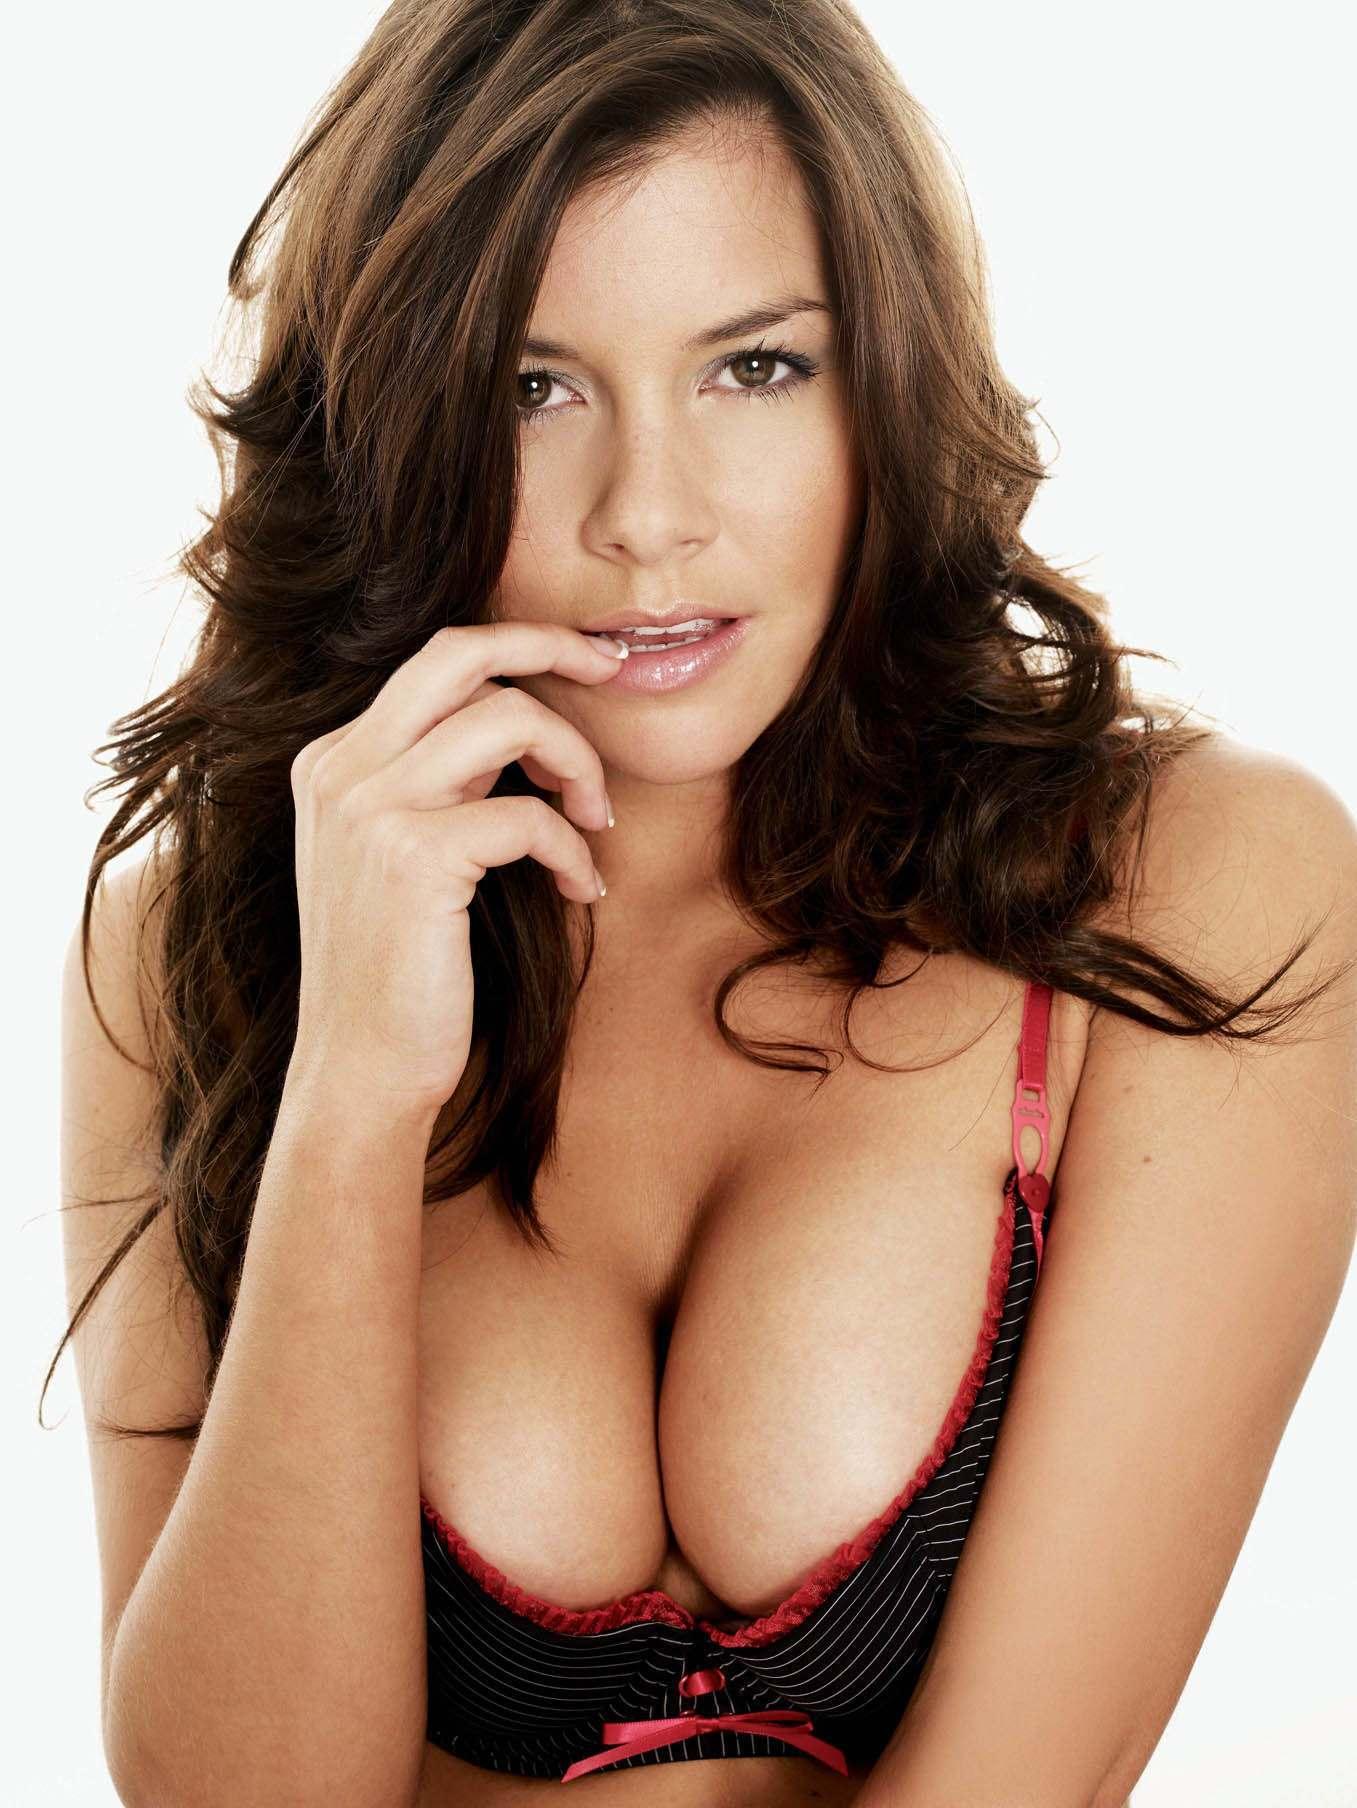 http://www.anorak.co.uk/wp-content/uploads/Imogen_Thomas1.jpg